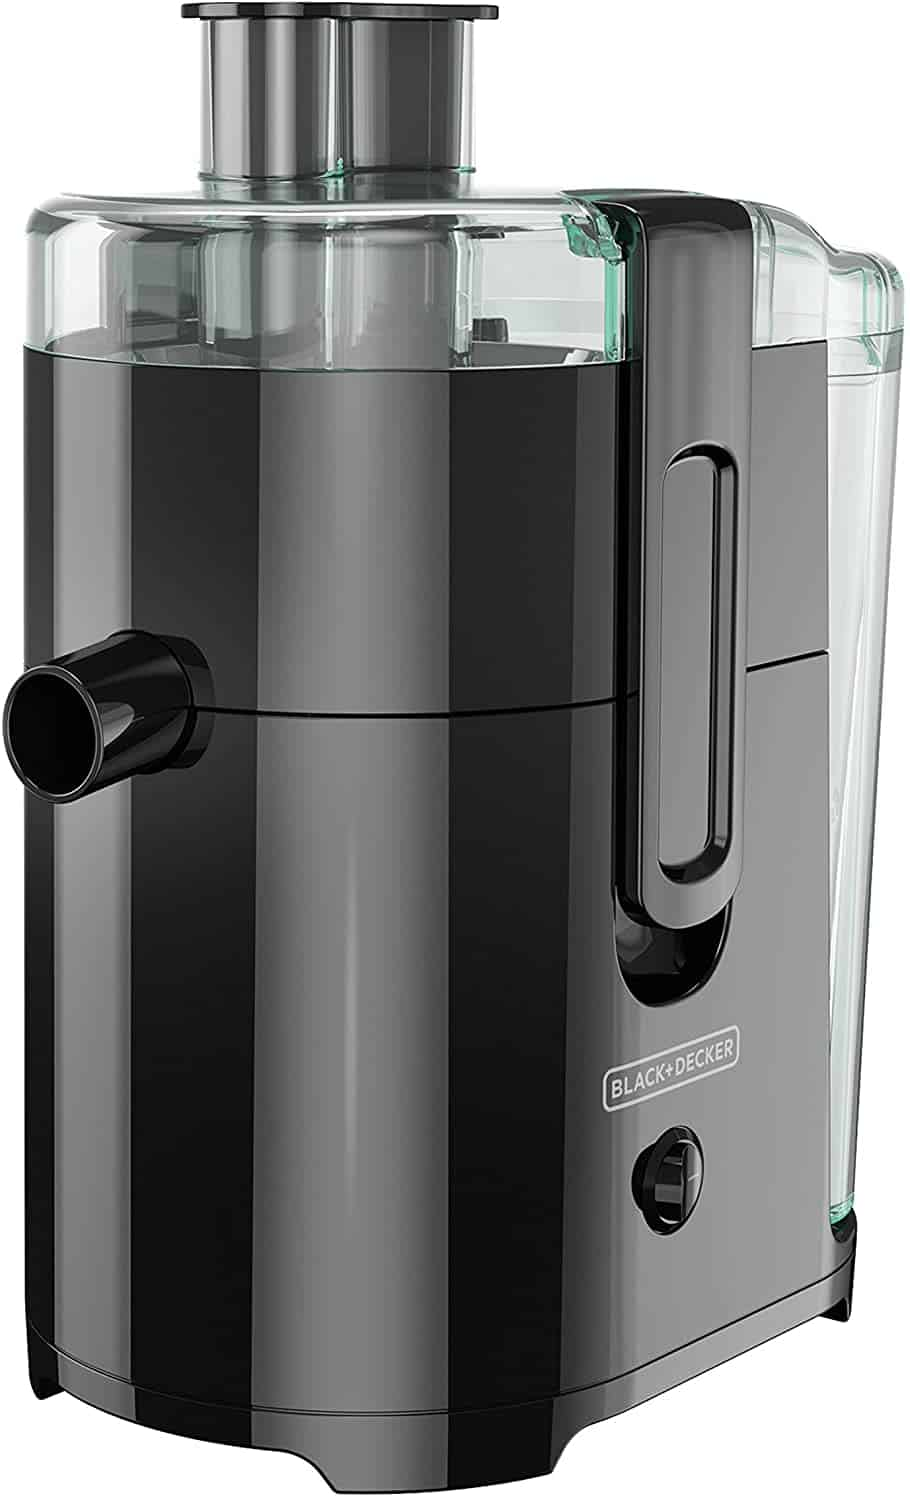 BLACKDECKER 400 Watt Fruit and Vegetable Juice Extractor Black JE2400BD B01DF53WV0